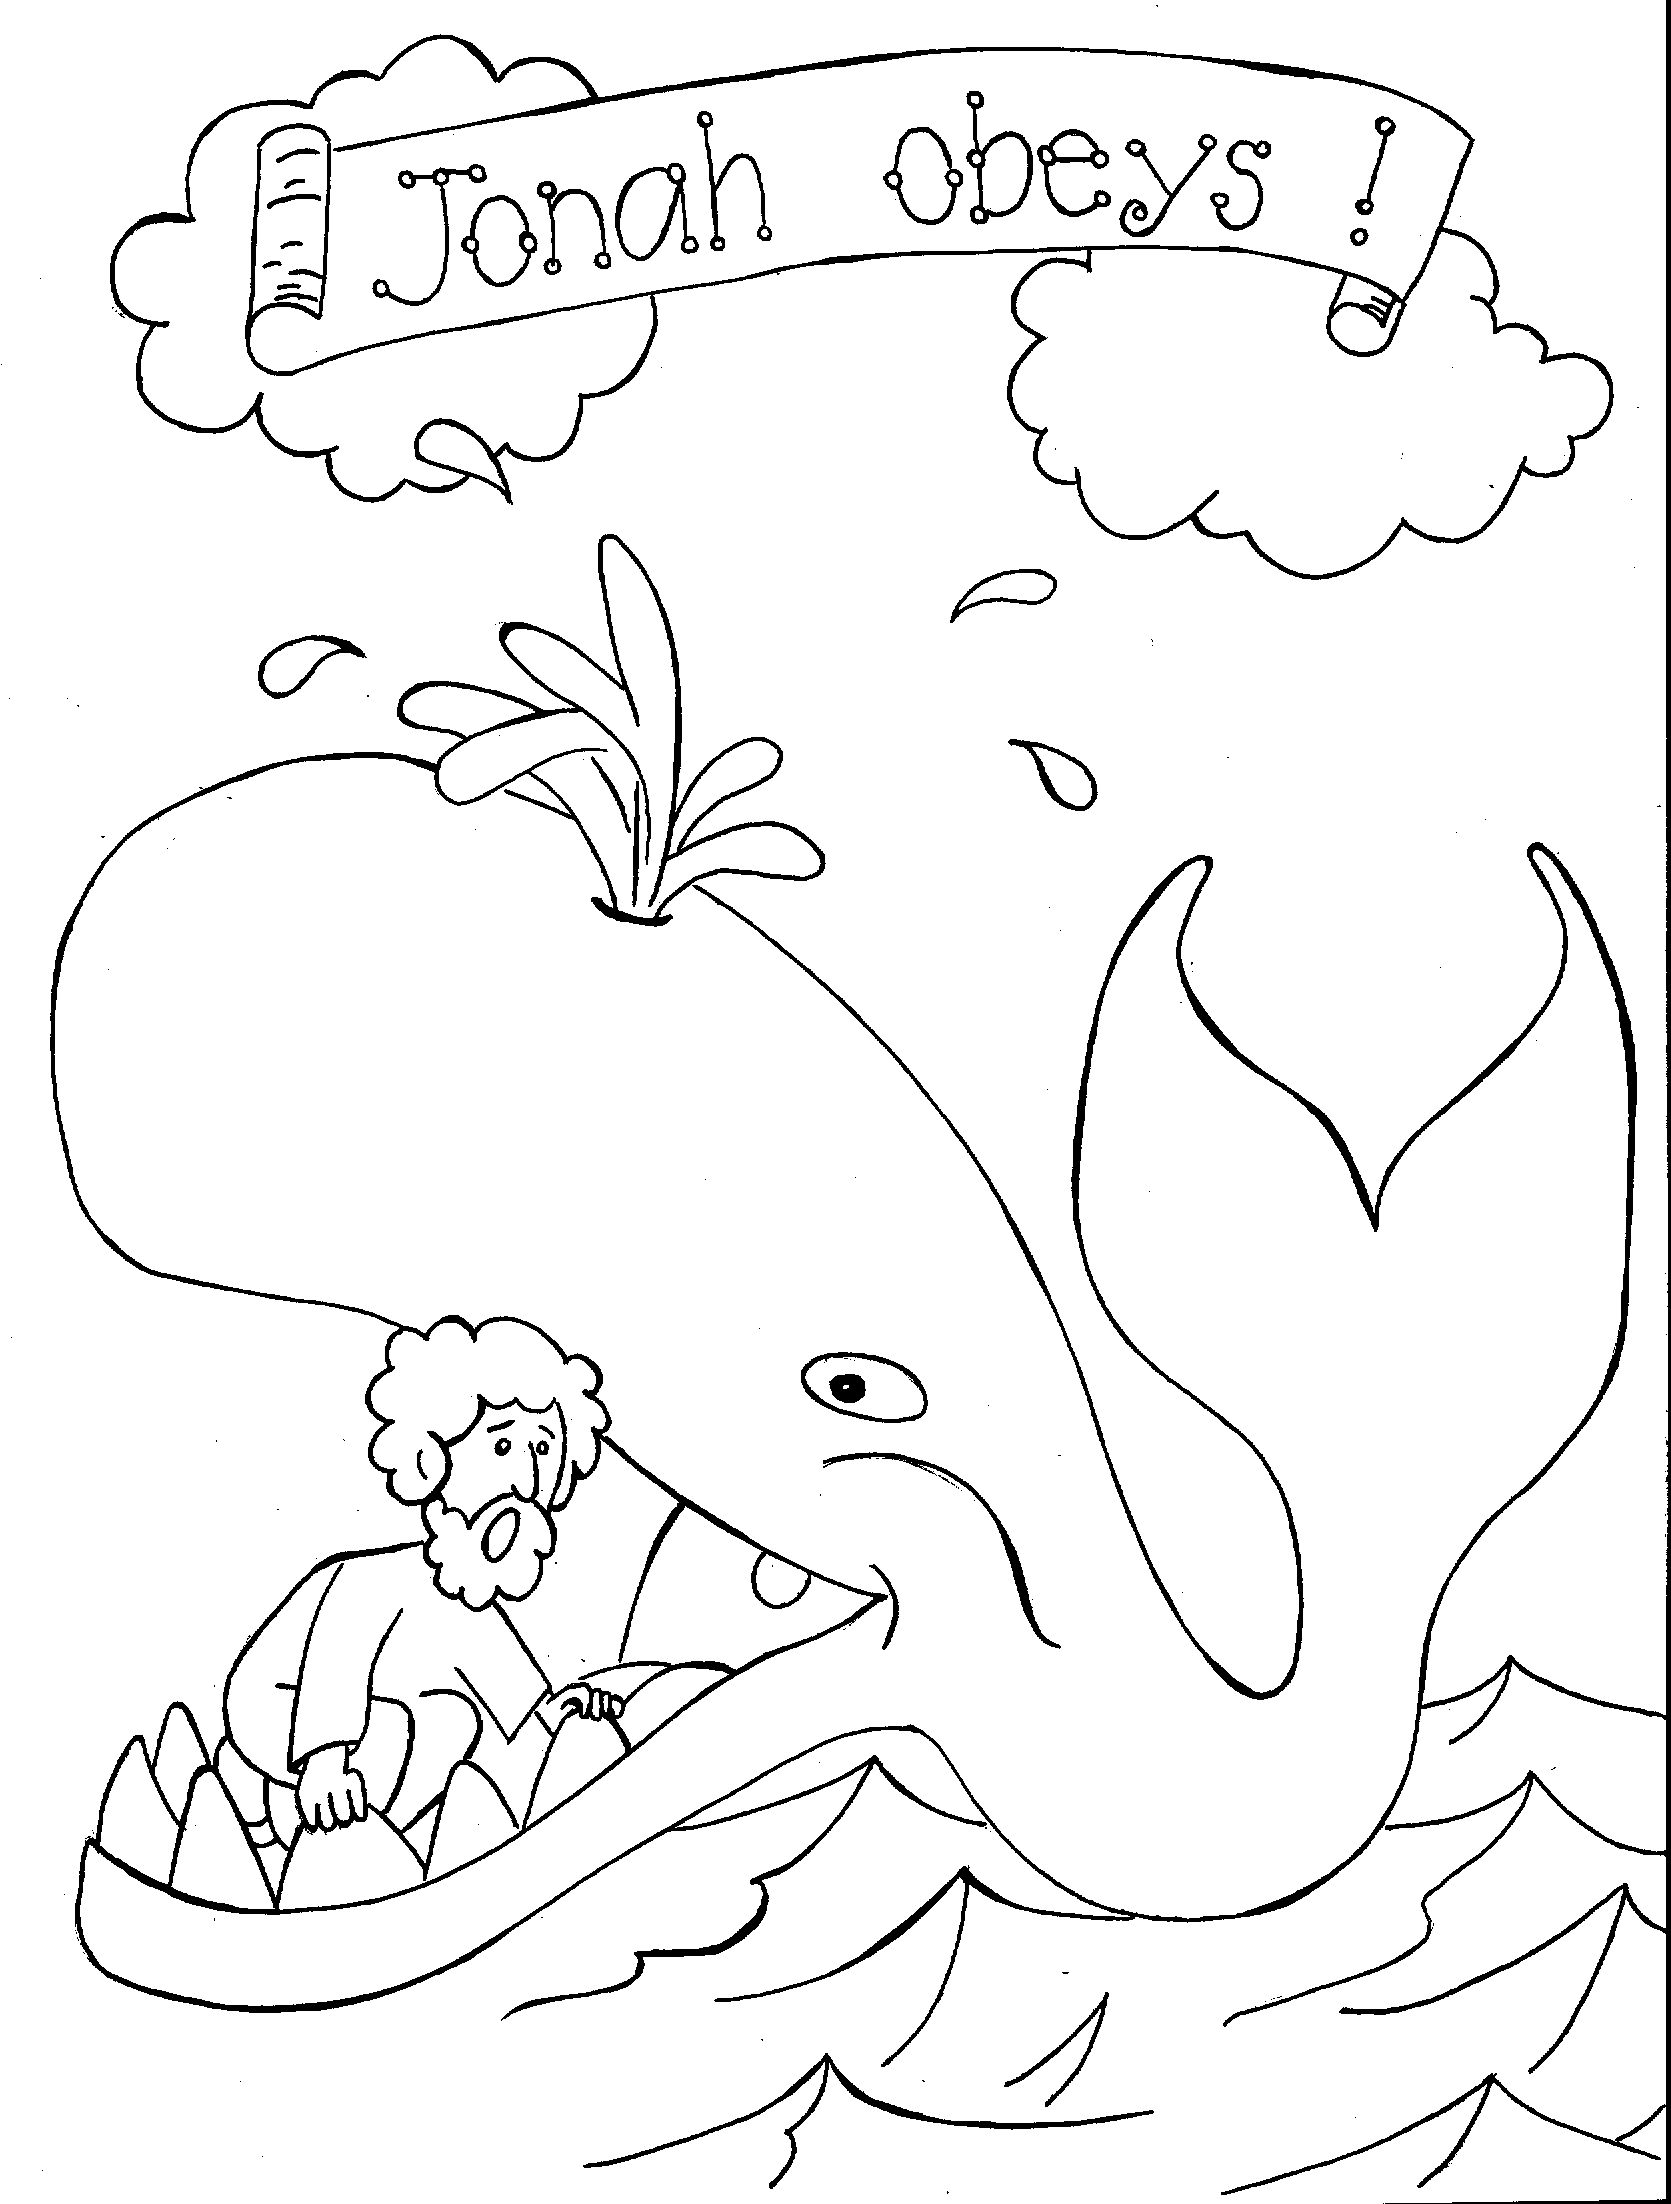 jonah and the whale coloring page jonah and the whale coloring page 3 craft ideas jonah and page the coloring whale